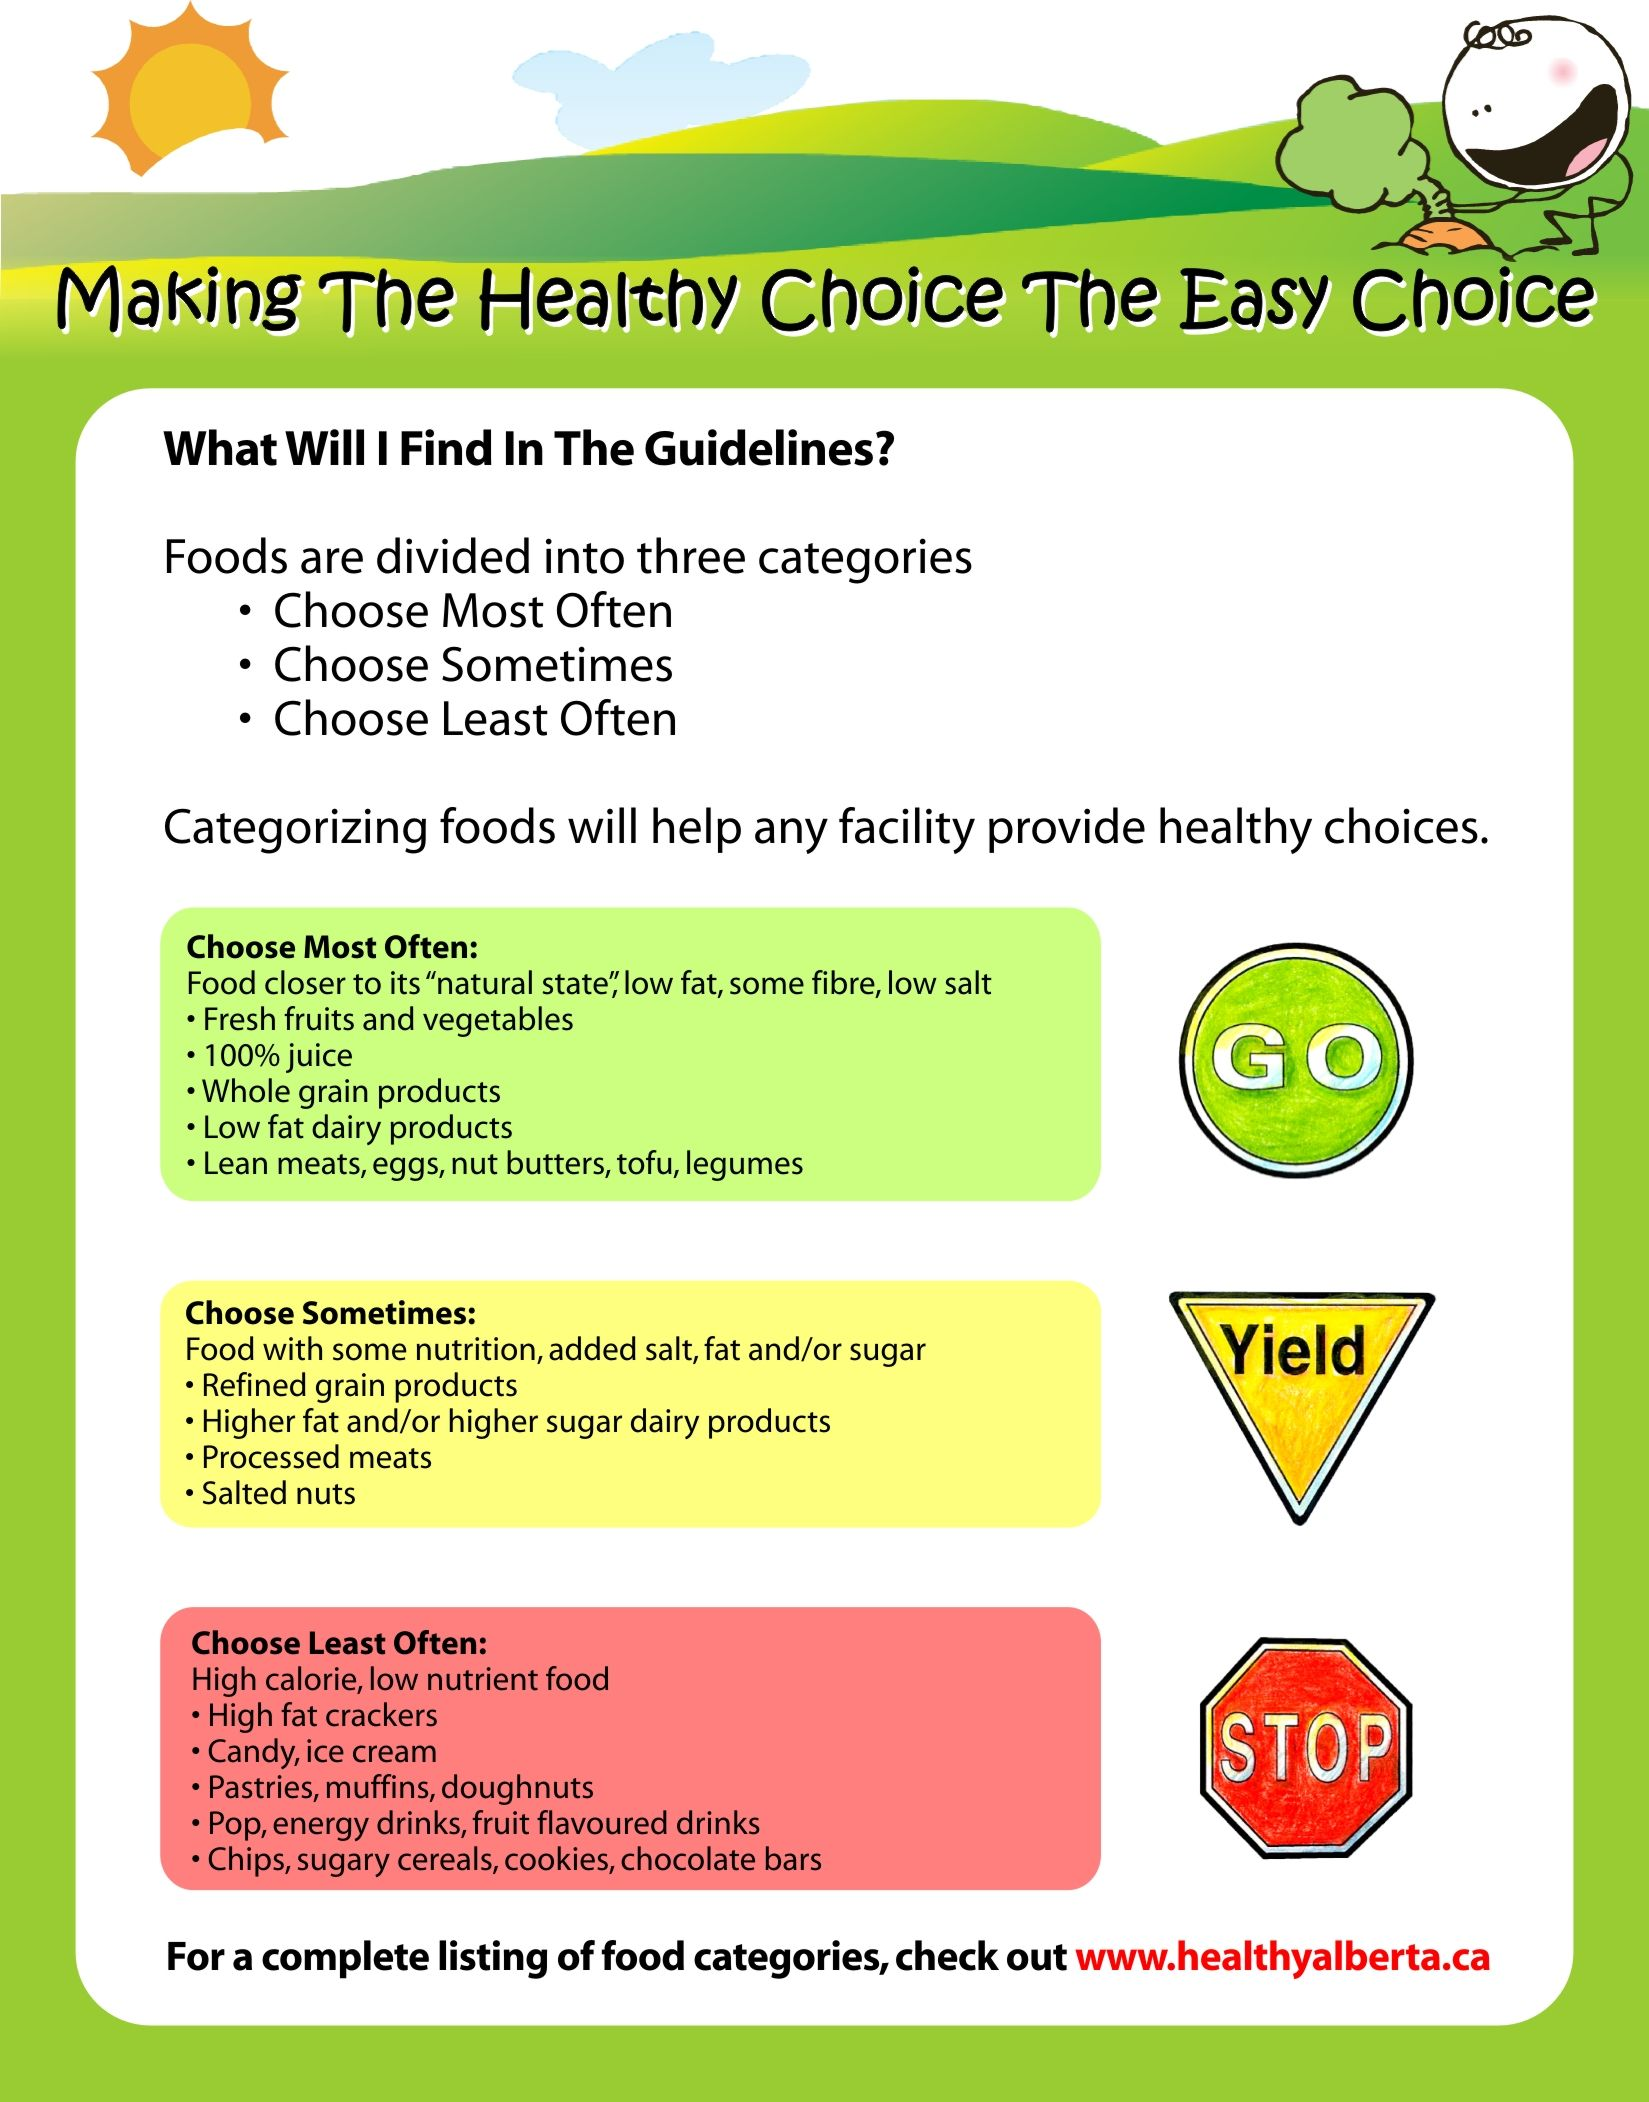 following a similar initiative as the statewide health improvement